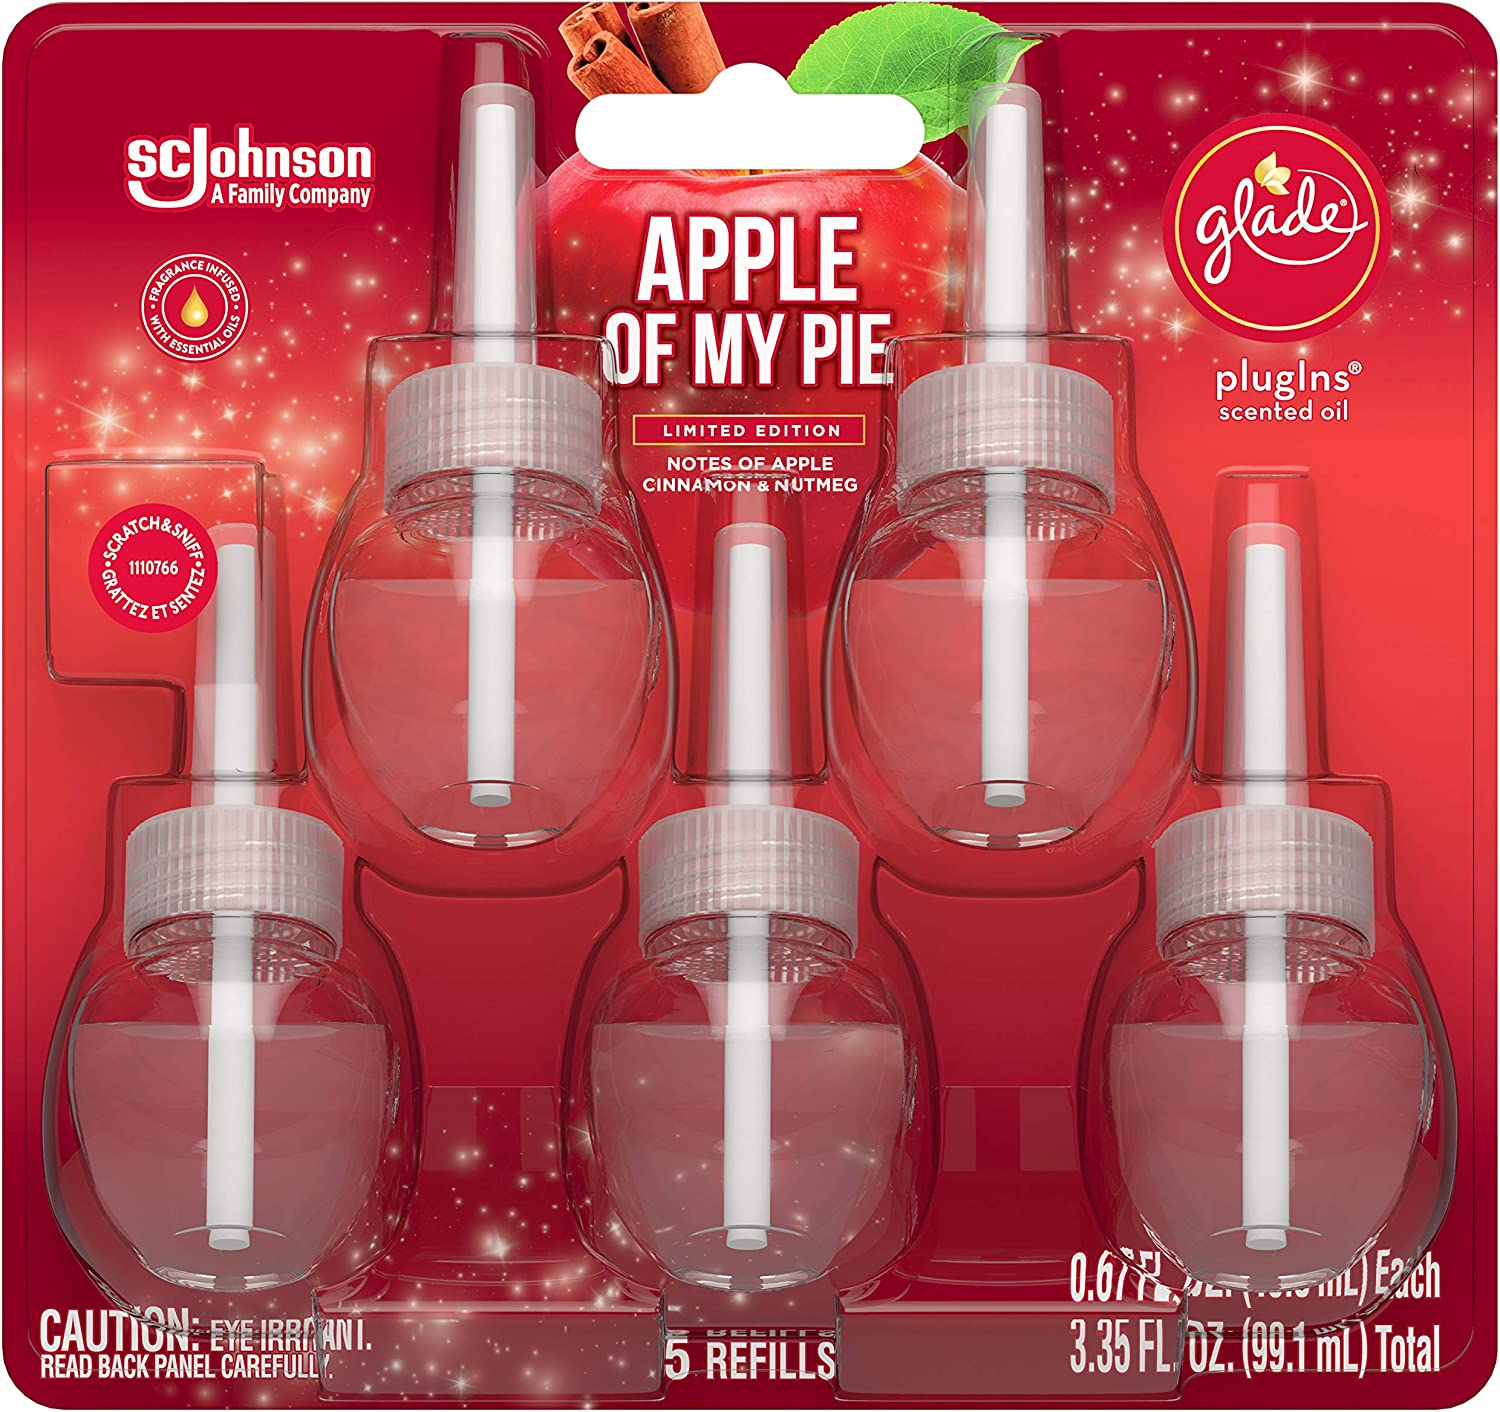 Glade Plugins Scented Oil Refills - Apple of My Pie - Limited Edition - 5 Count Oil Refills Per Package - One (1) Package